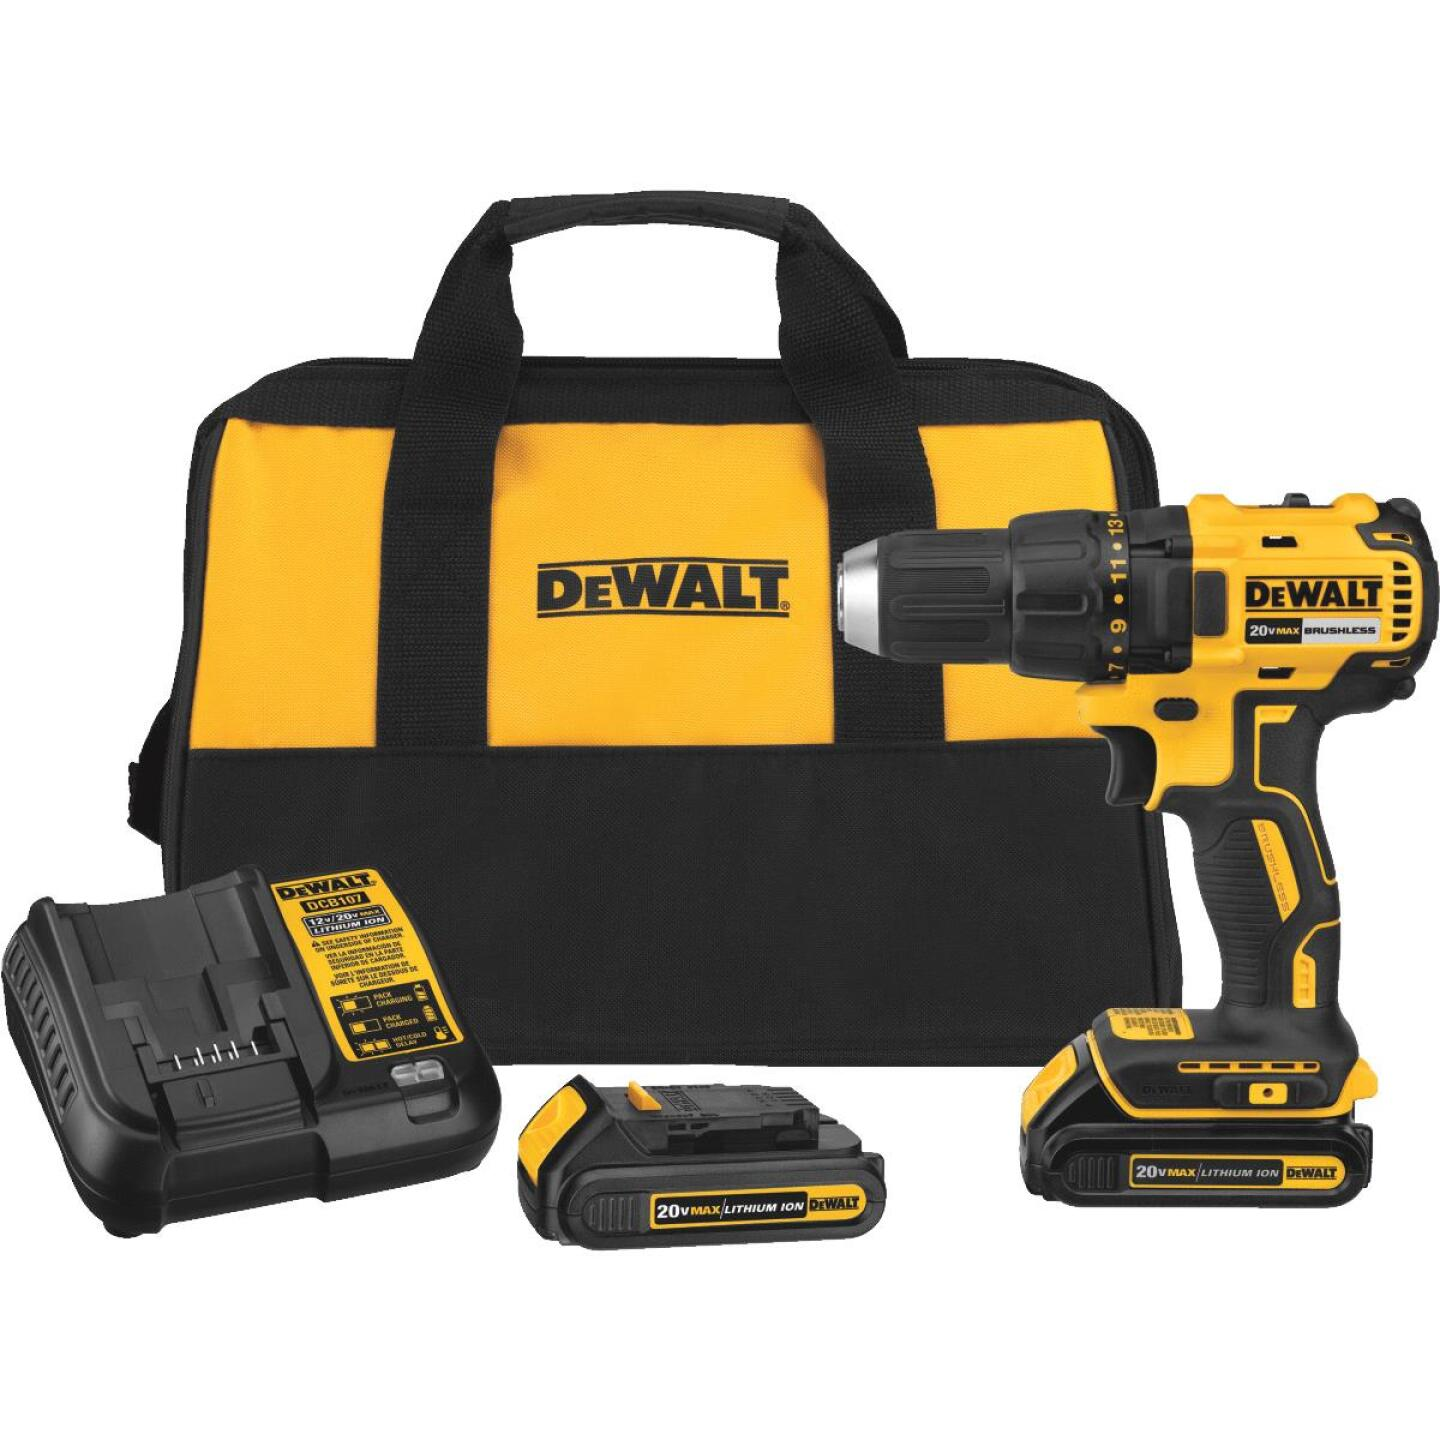 DeWalt 20 Volt MAX Lithium-Ion Brushless 1/2 In. Compact Cordless Drill Kit Image 1